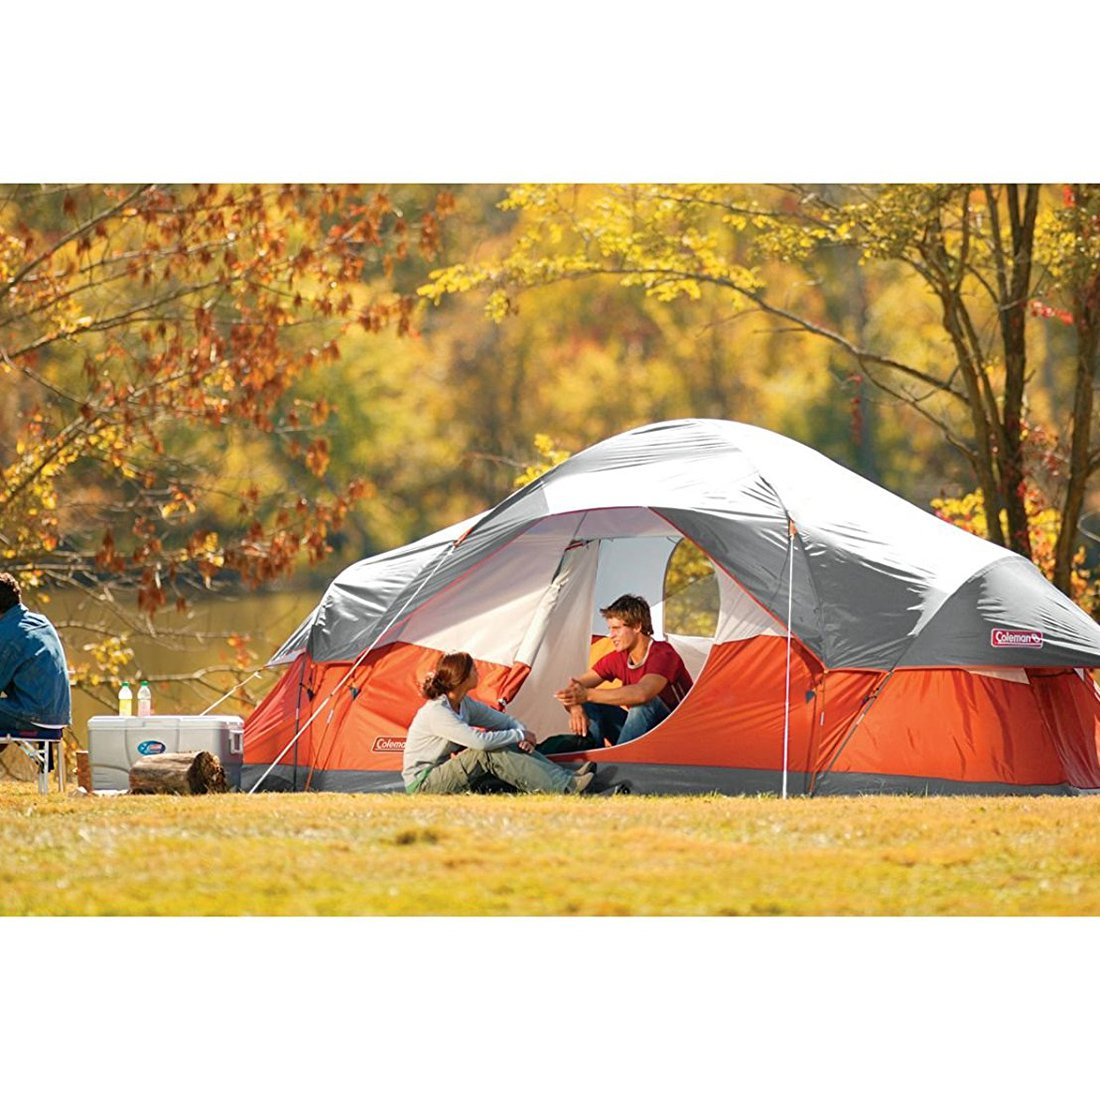 Red Canyon 8 Person 17 x 10 Foot Outdoor Camping Large Lightweight Dome Tent